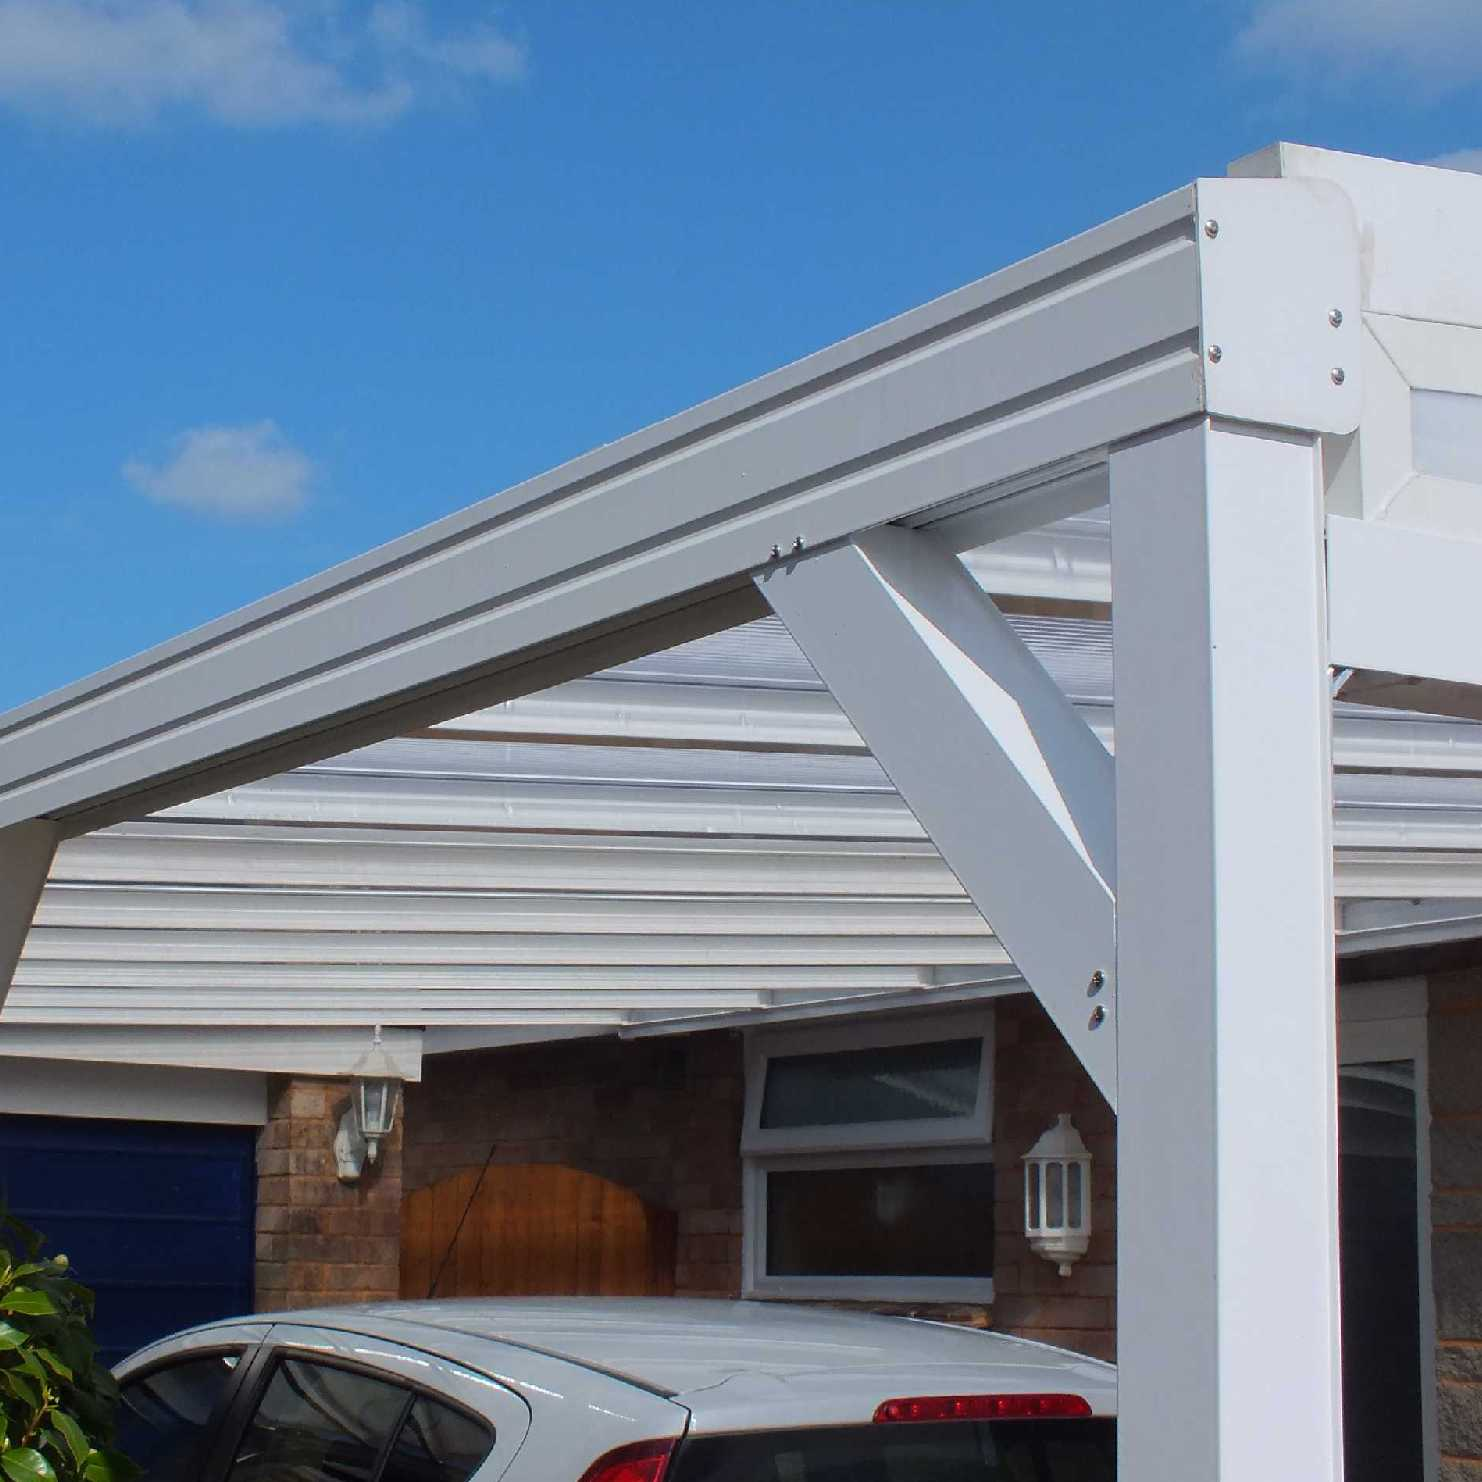 Great deals on Omega Smart Lean-To Canopy with 16mm Polycarbonate Glazing - 7.4m (W) x 2.0m (P), (4) Supporting Posts